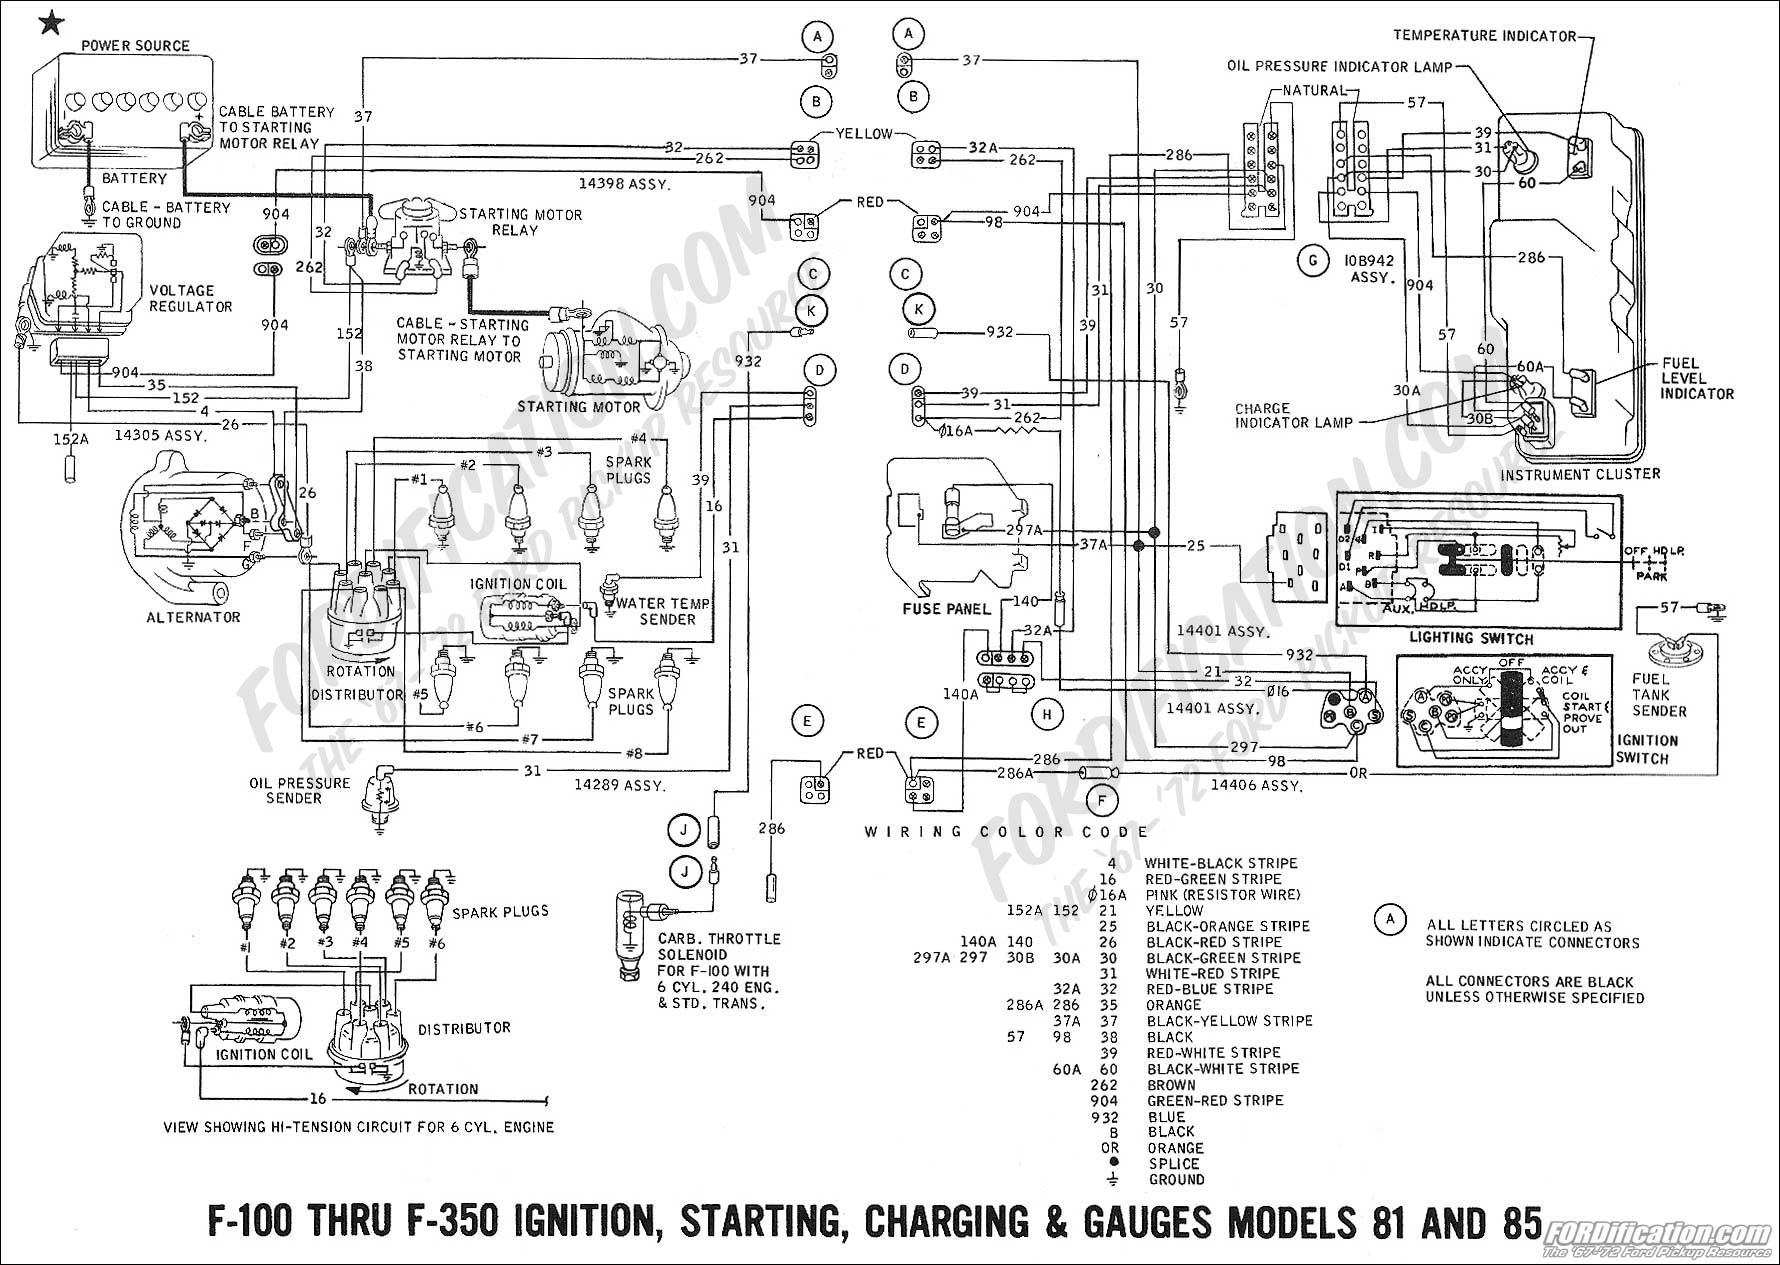 hight resolution of 1968 ford f100 instrument cluster wiring diagram wiring diagrams 1969 ford bronco wiring diagram 1968 ford f250 wiring diagram